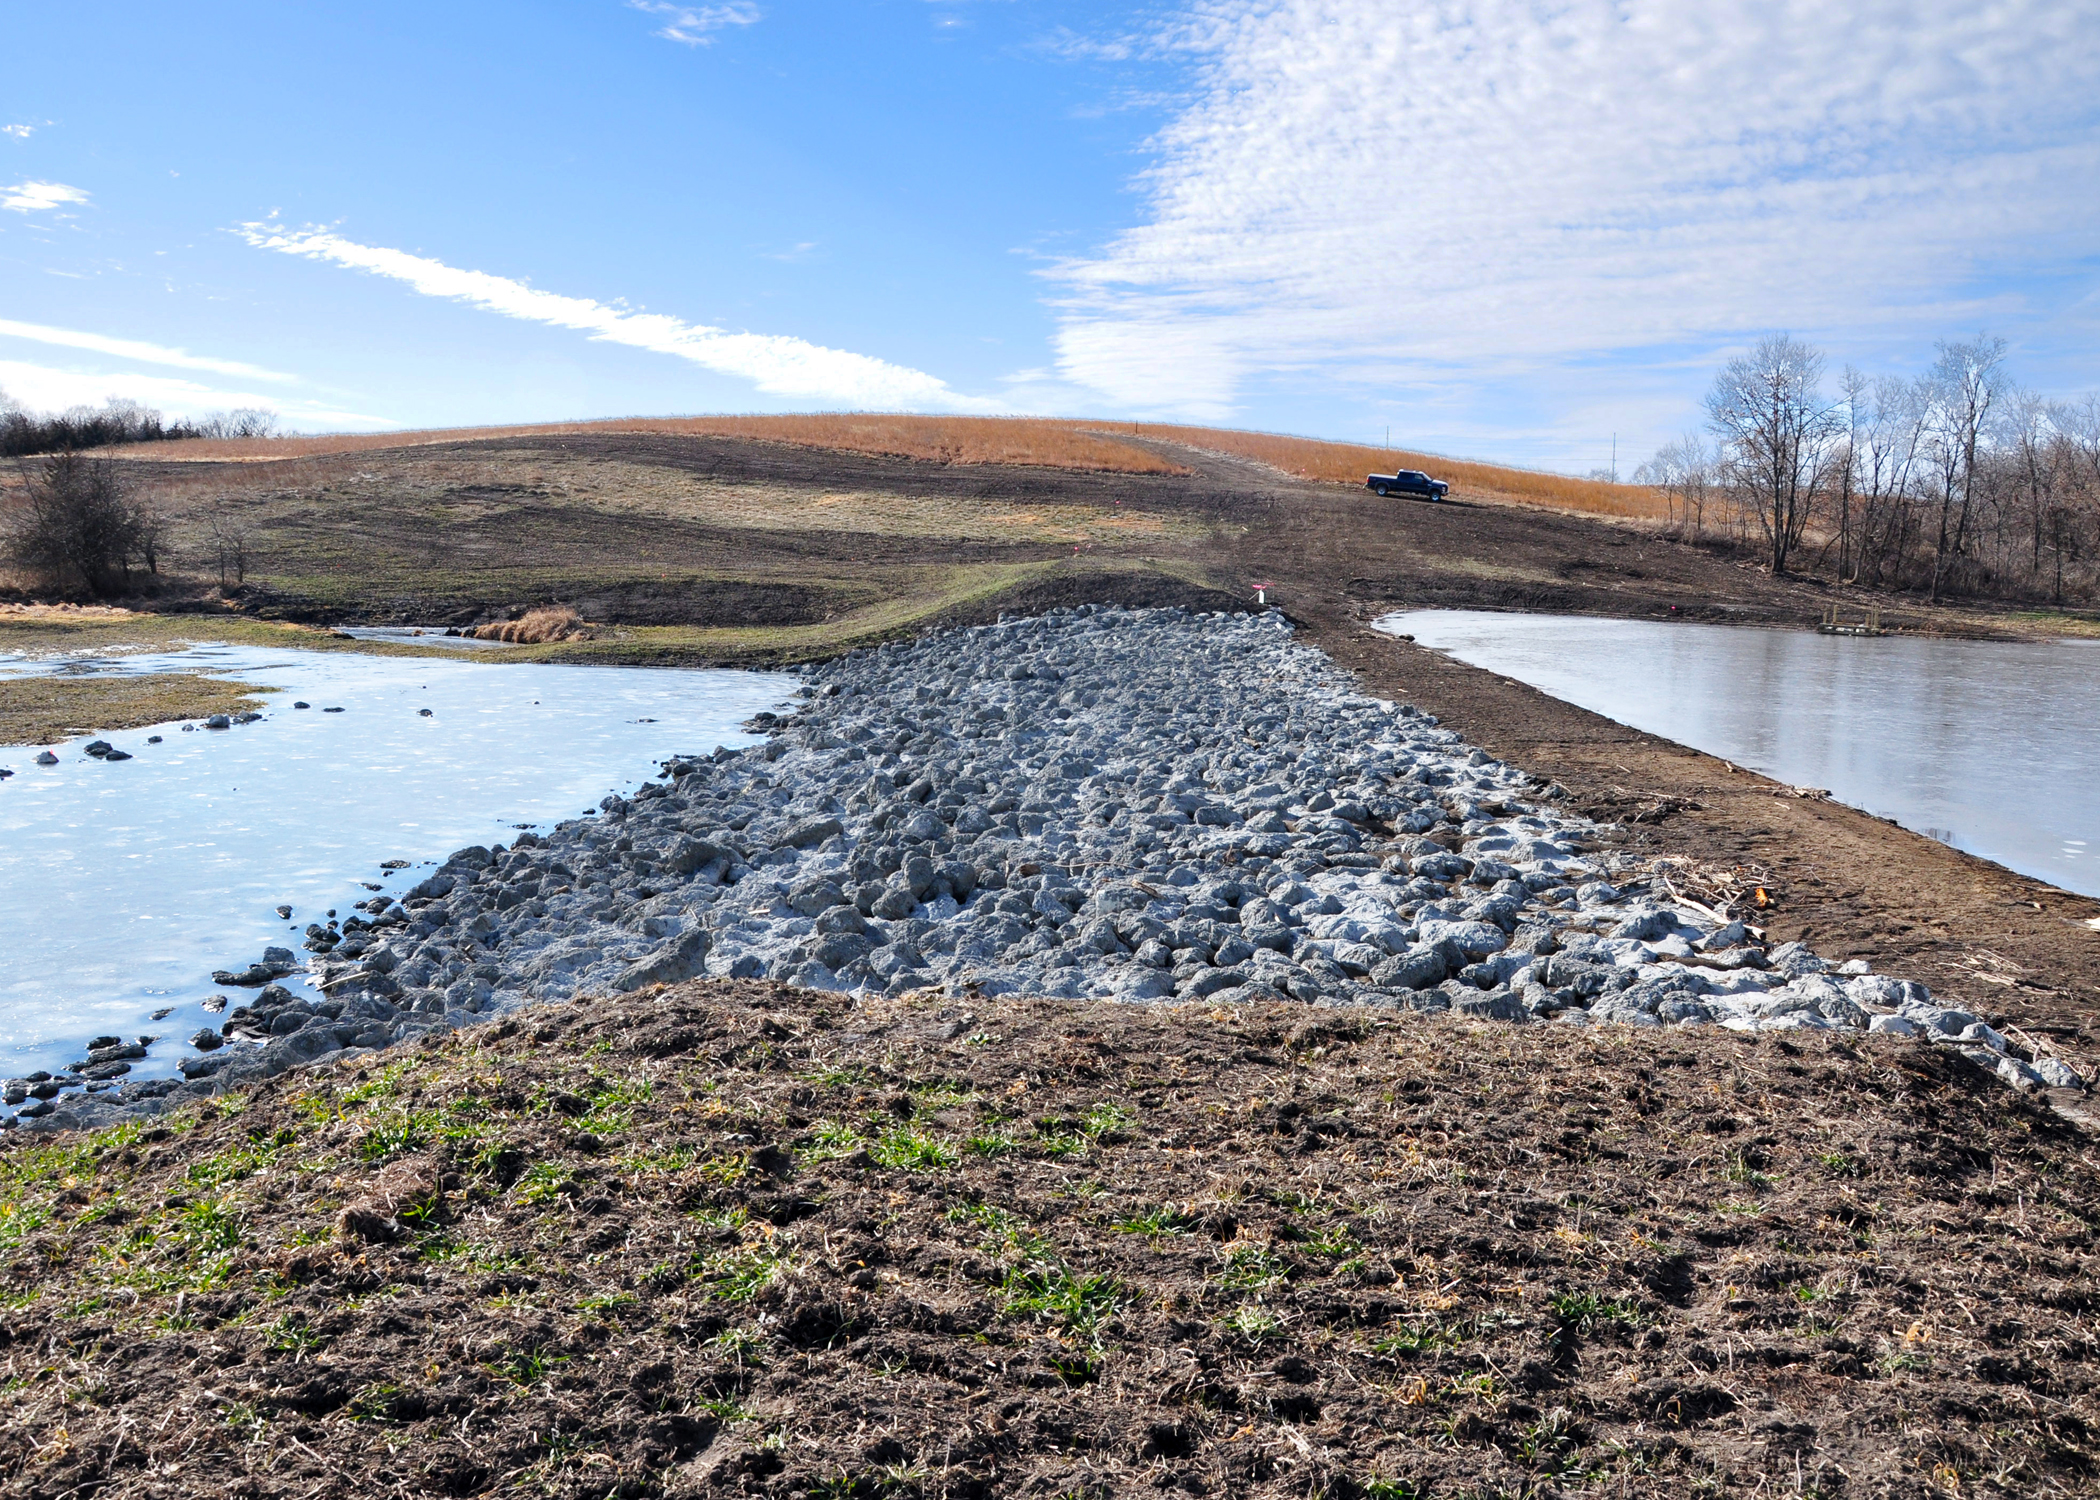 A dam and rock chute allow water to back up into the wetland (to the right), whi